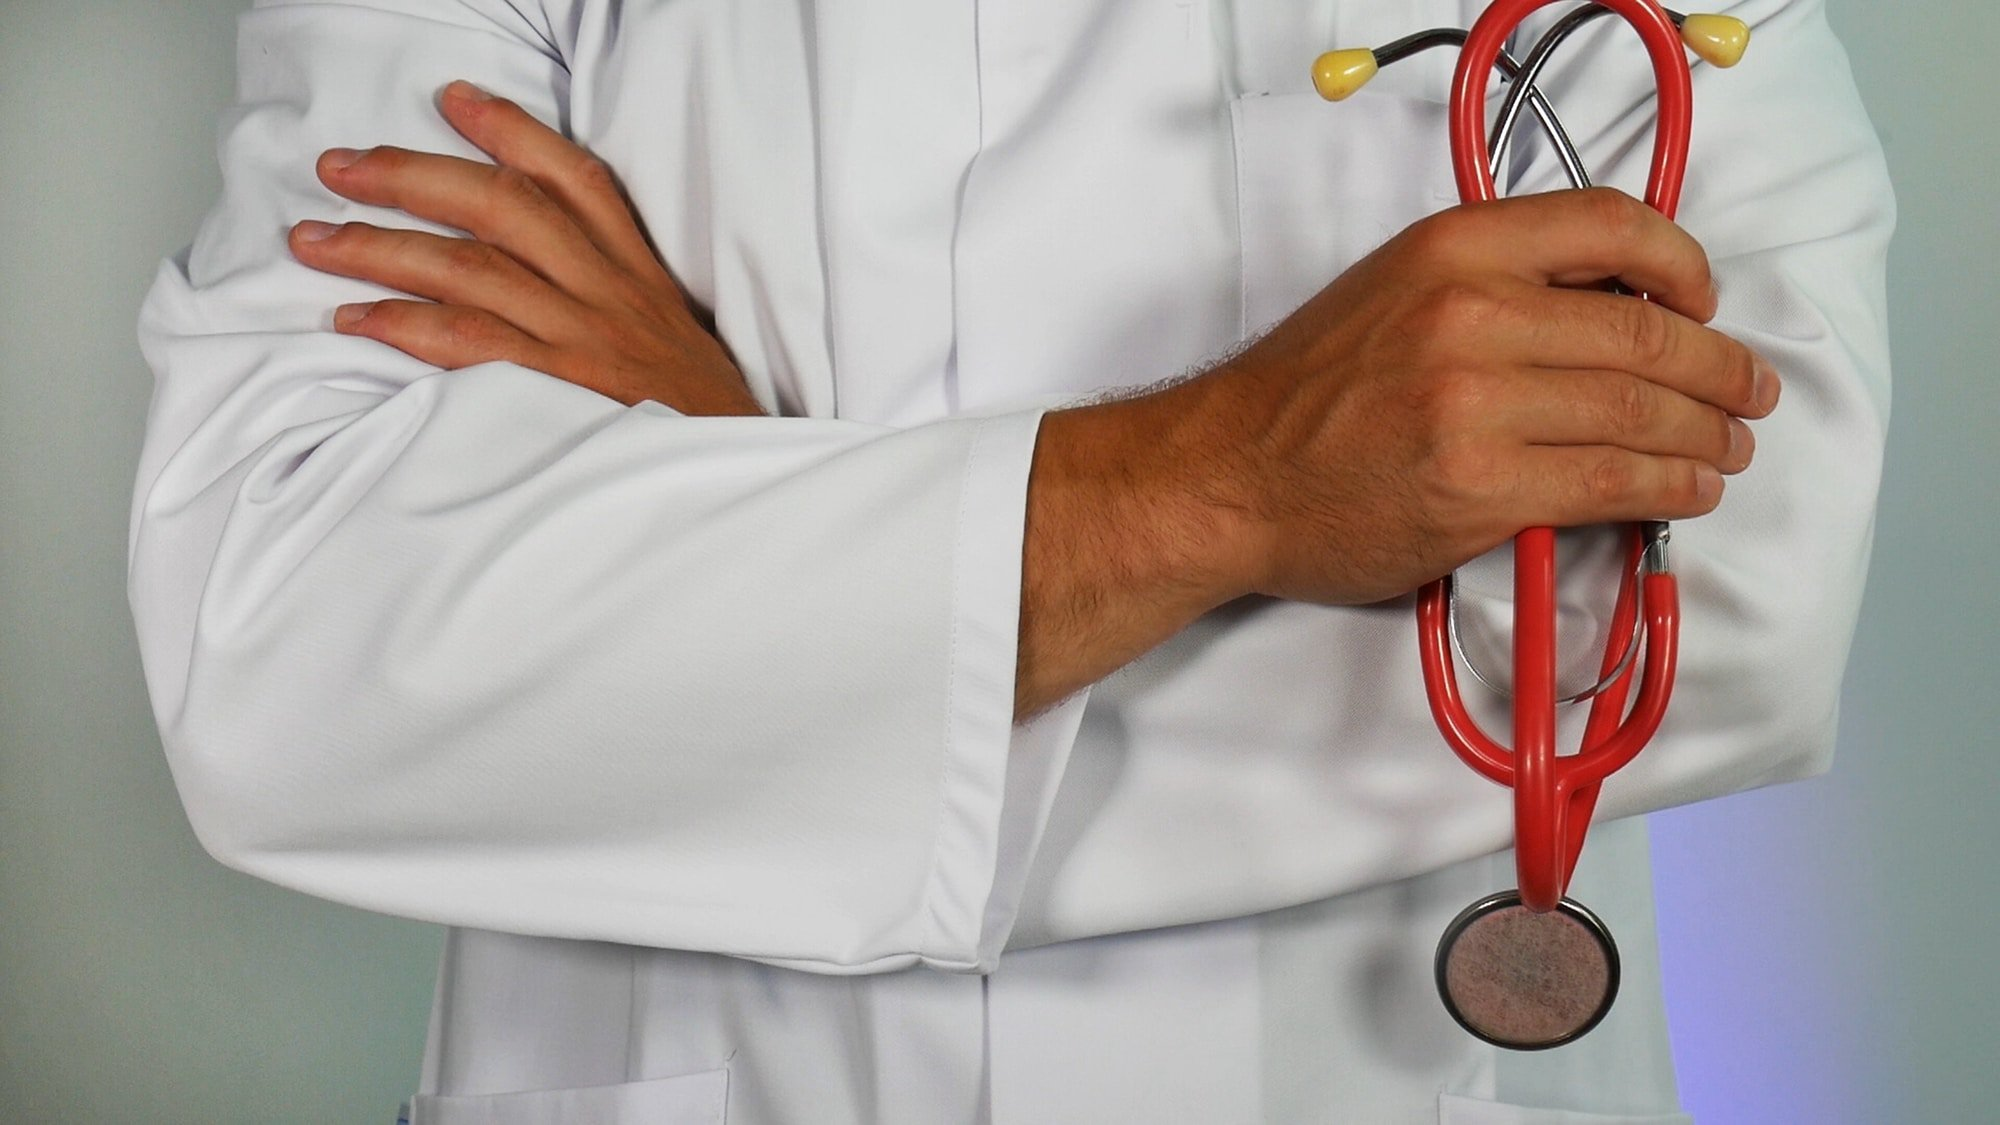 Best Healthcare growth stocks to buy